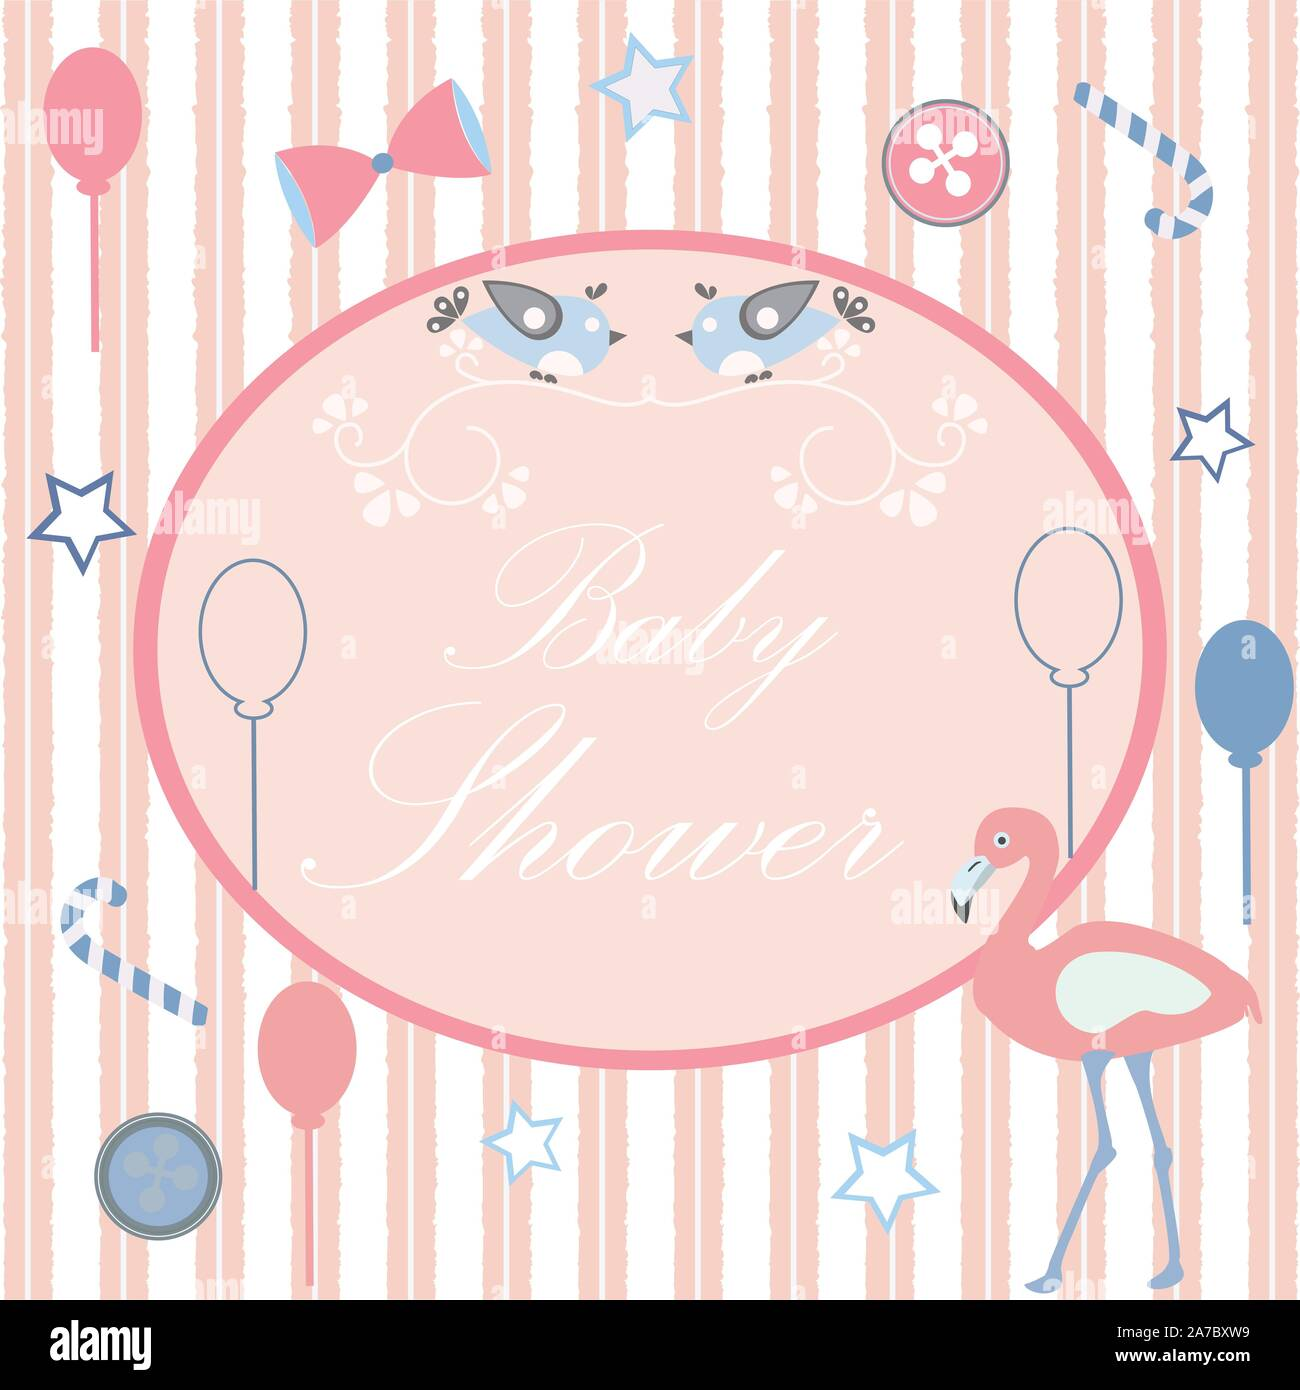 baby shower card design with message pink background with pink stripes vector illustration 2A7BXW9